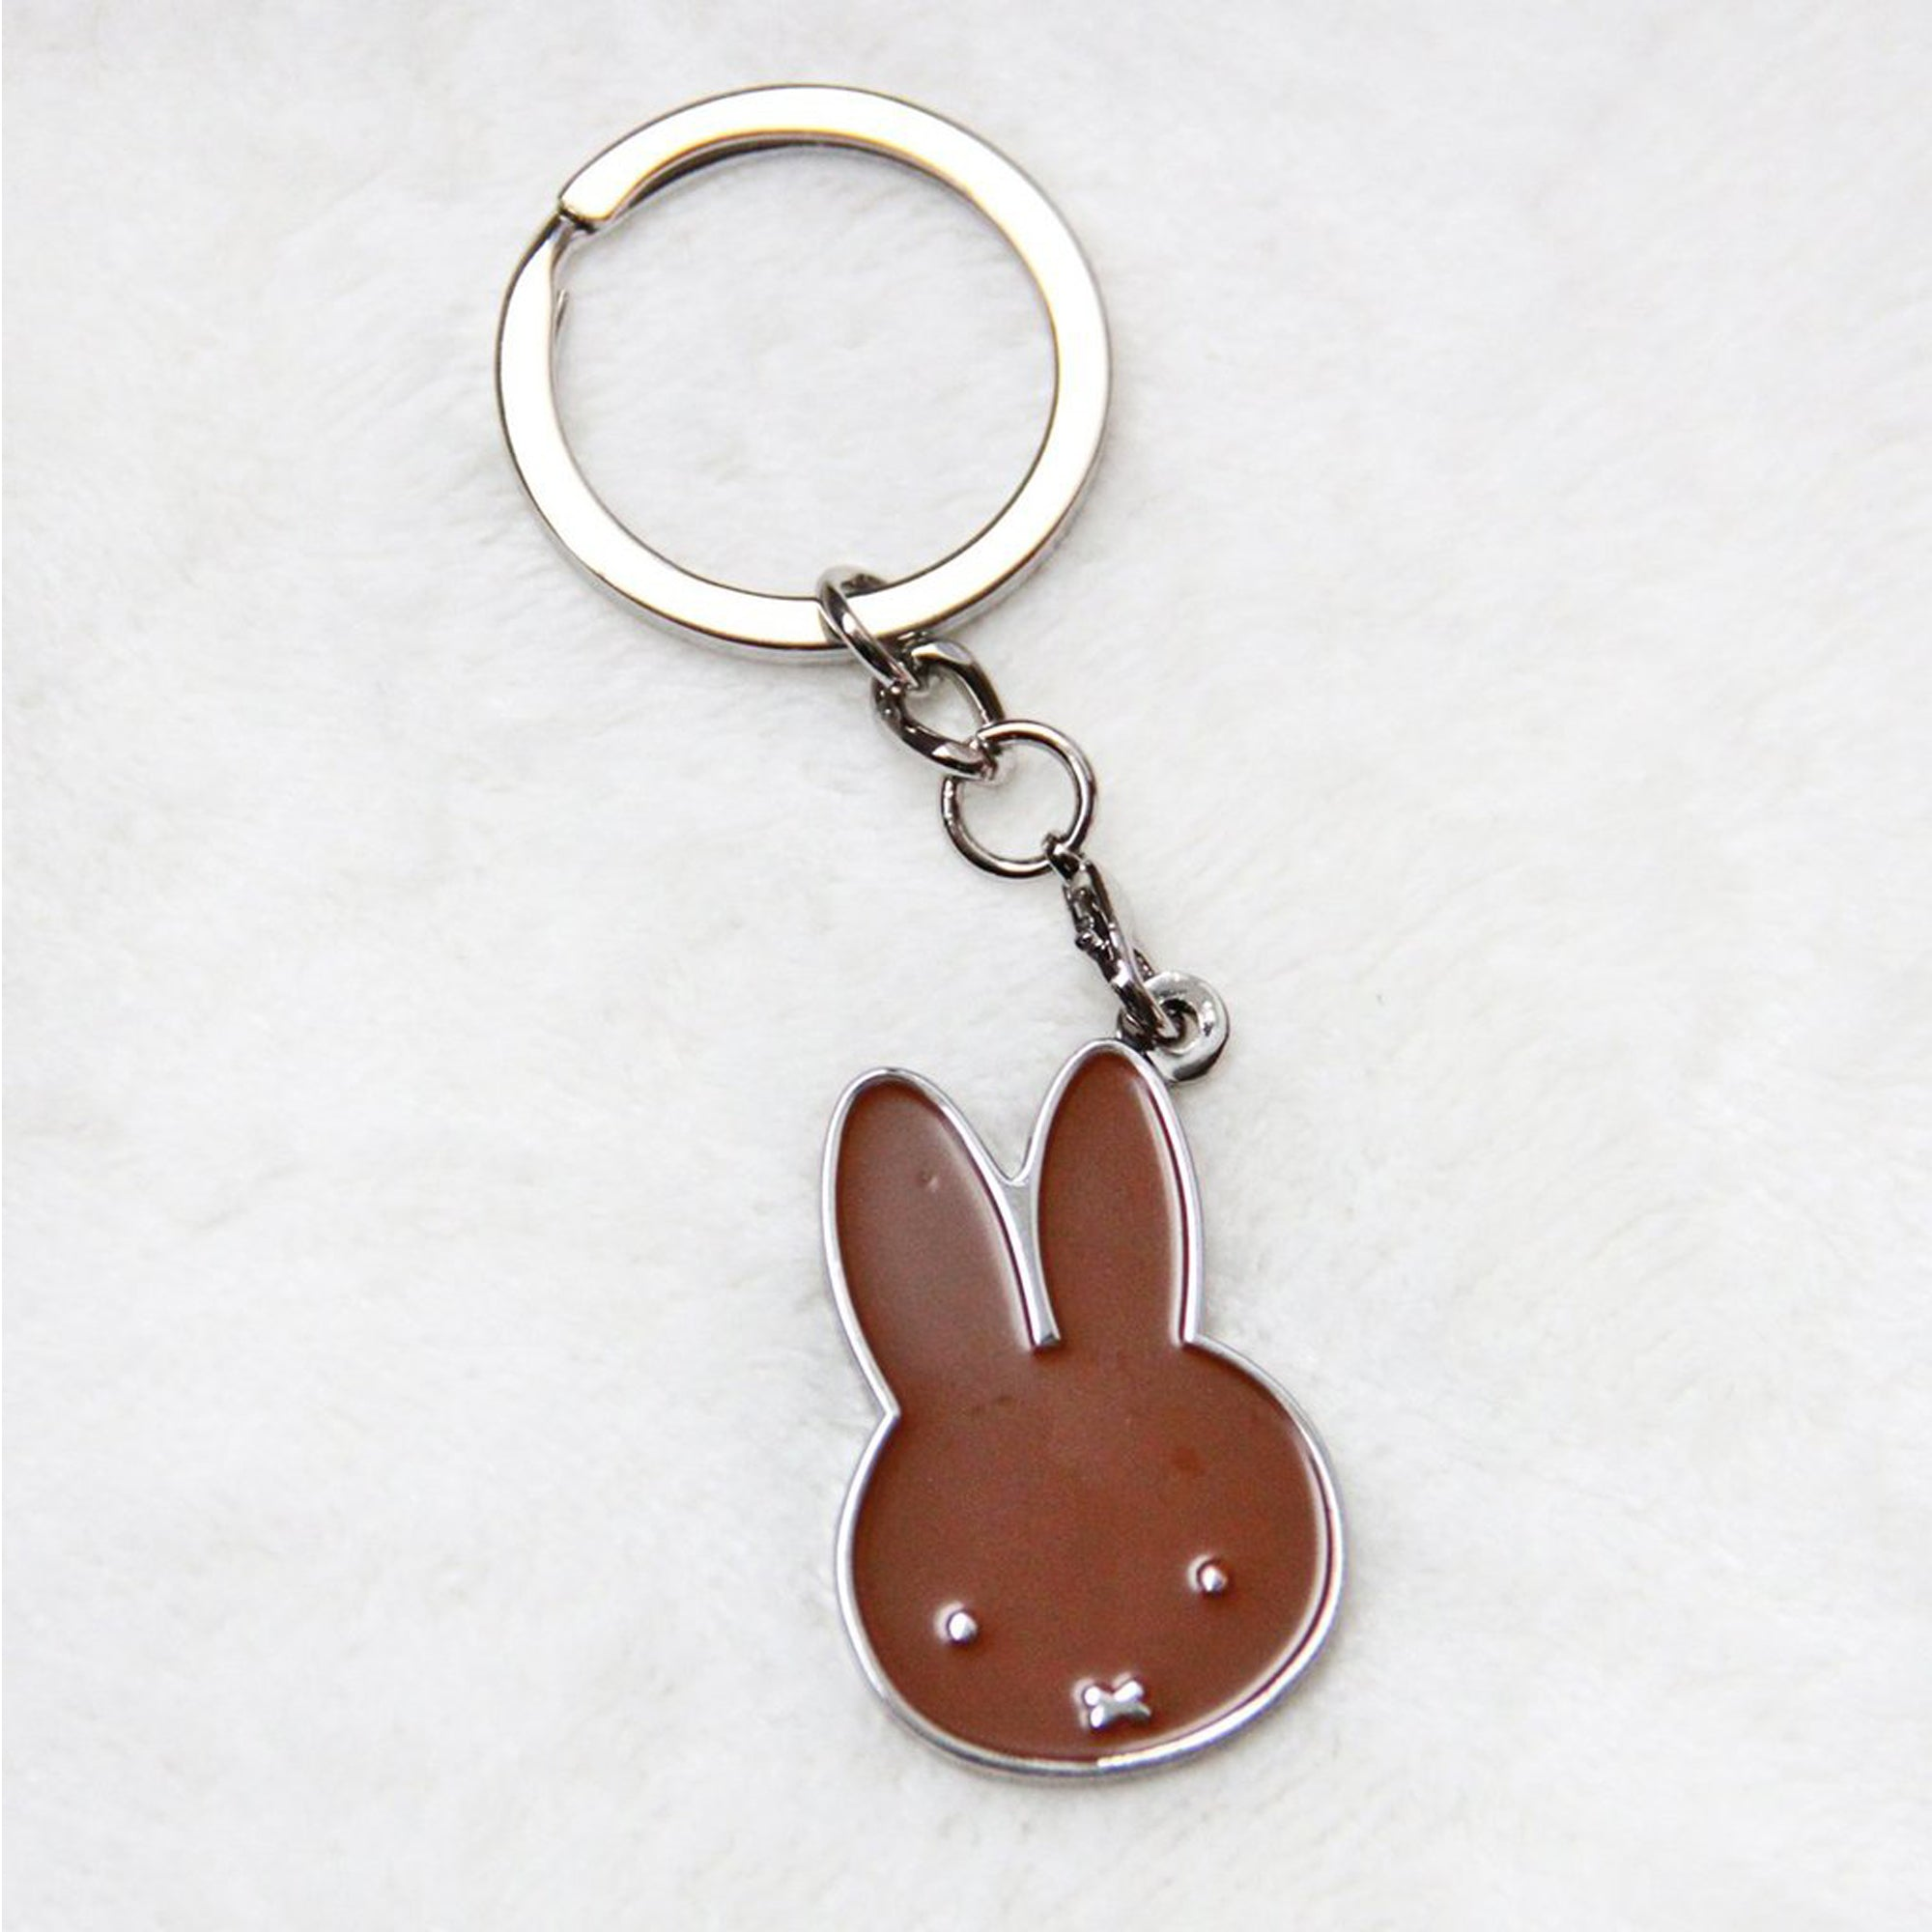 Miffy Badge Keychain - Melanie - Zigzagme